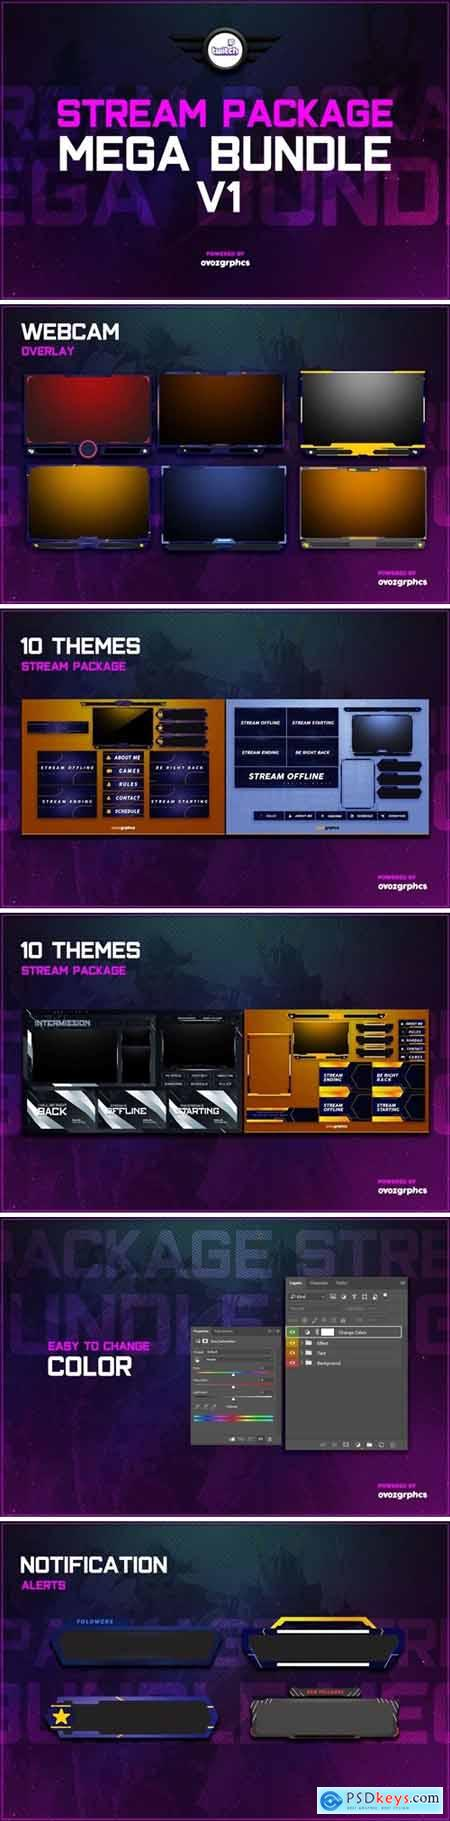 Stream Package Mega Bundle V1 3985842